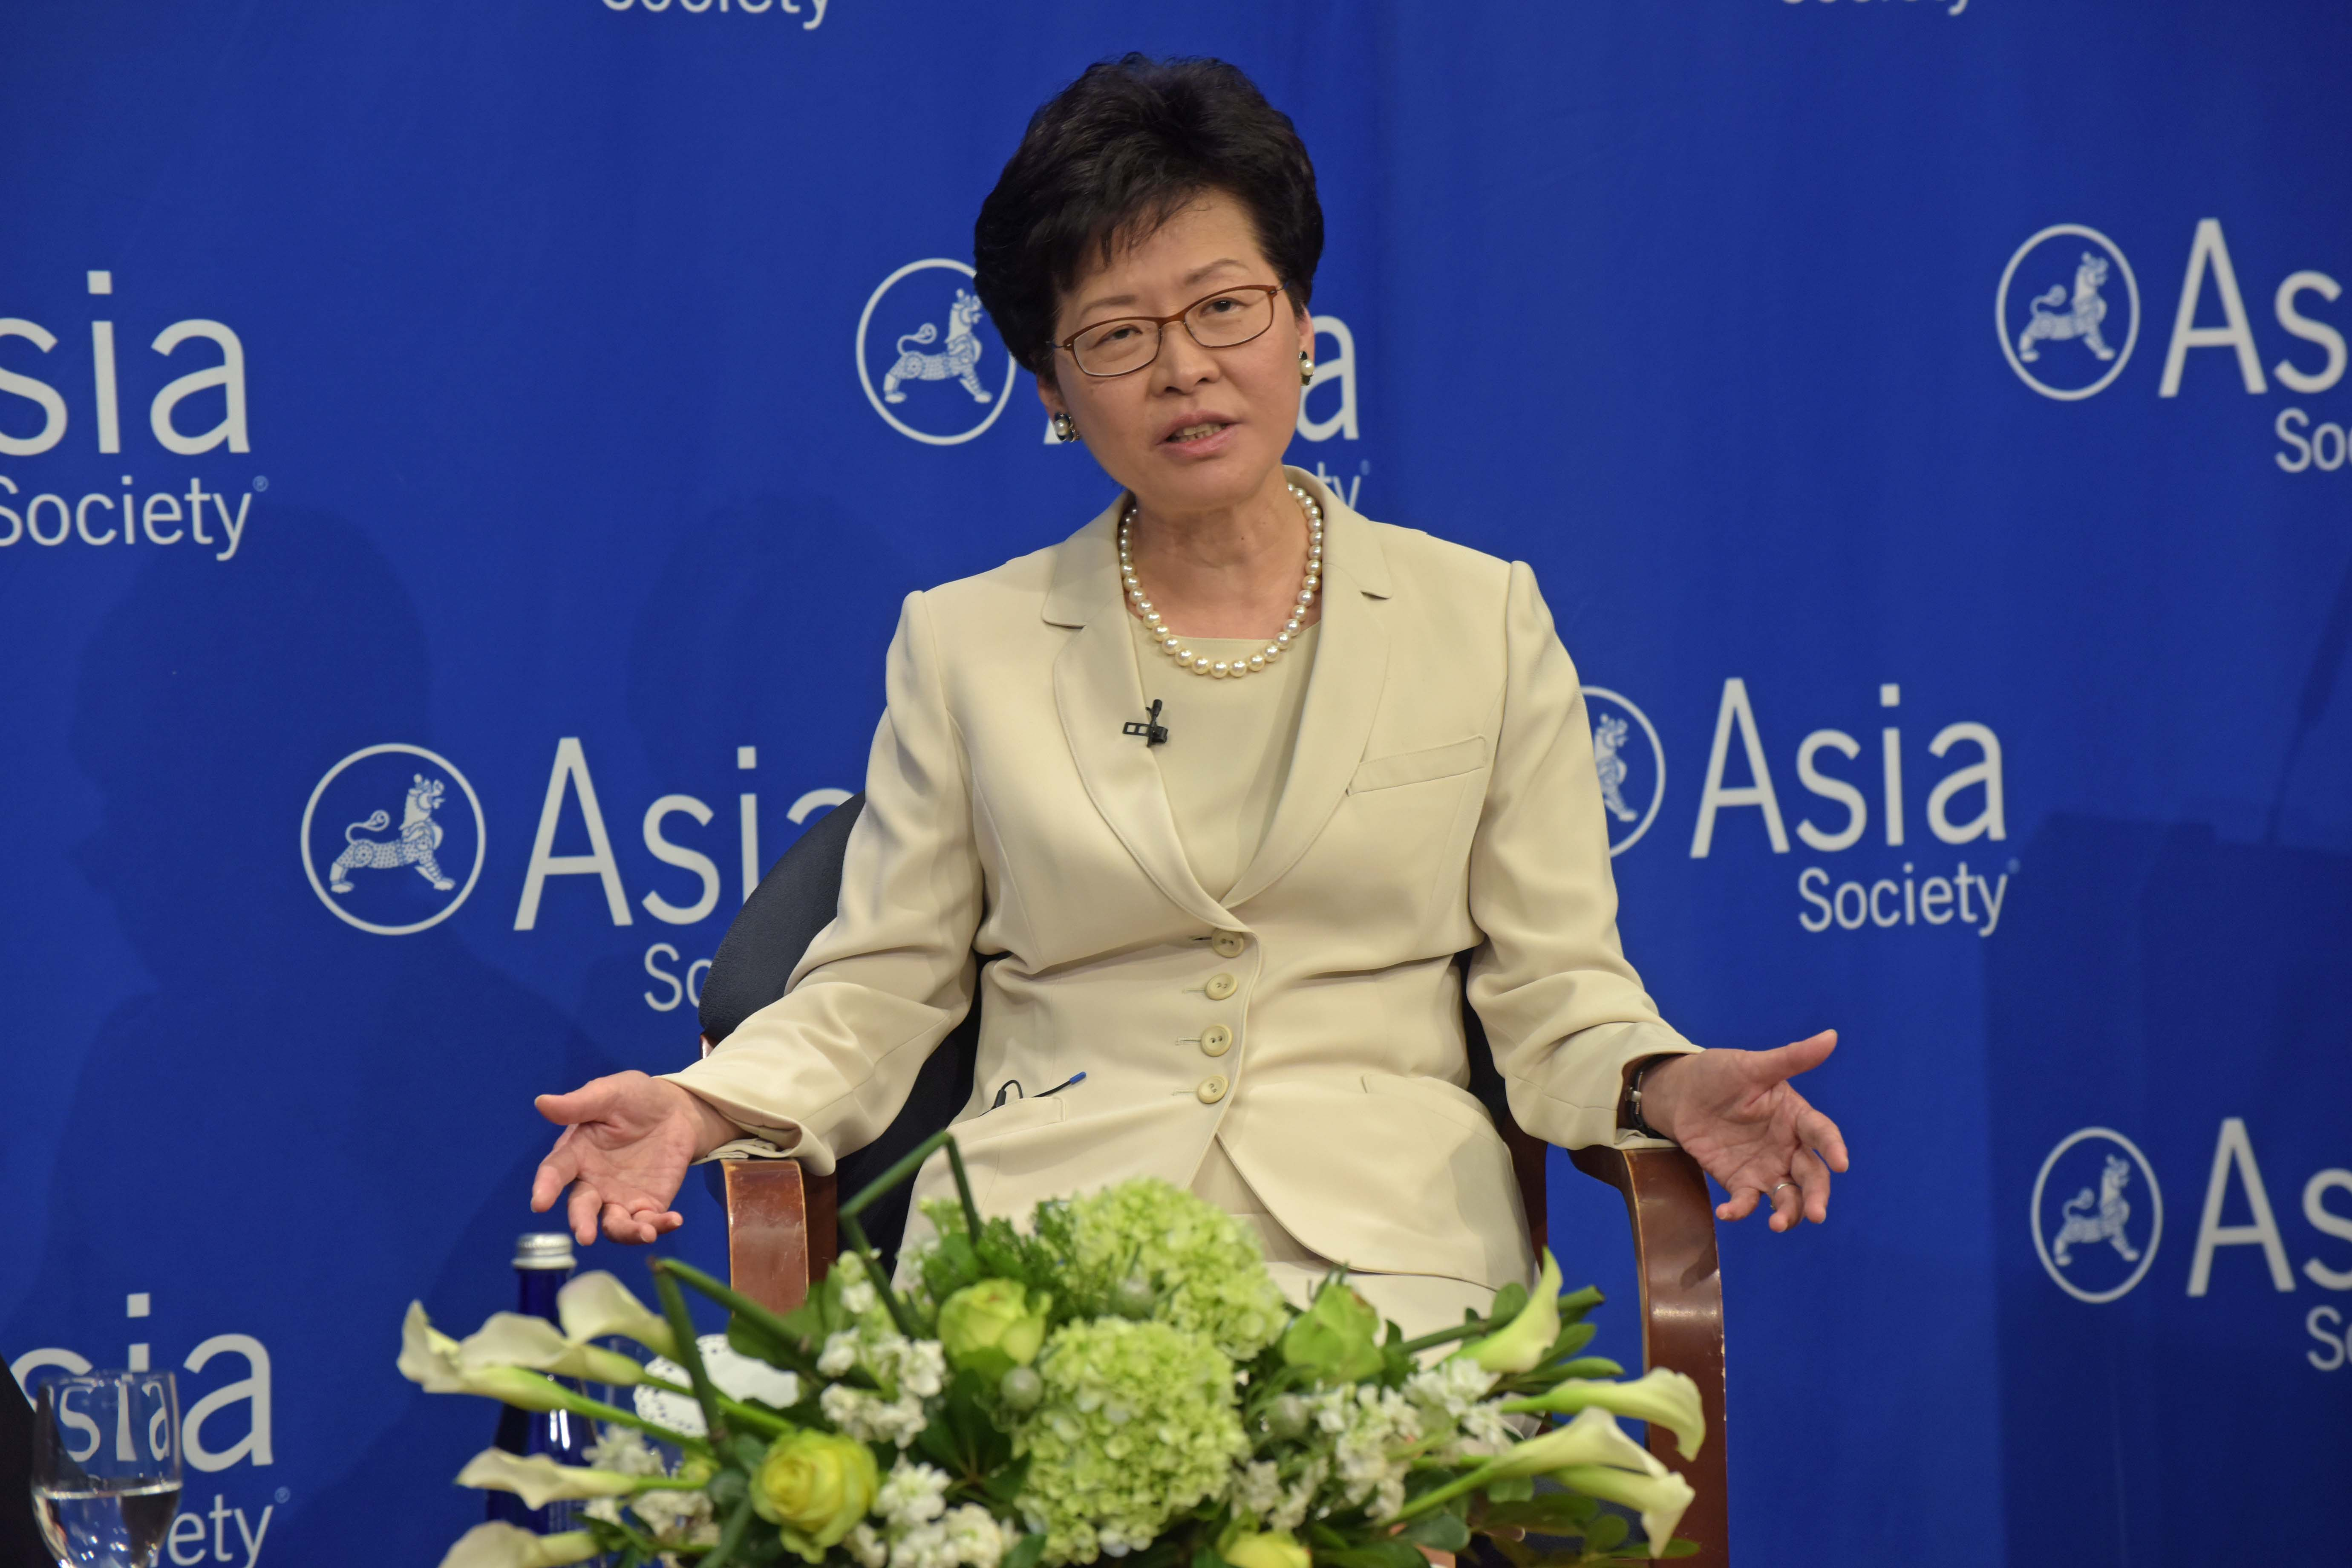 Chief Secretary of Hong Kong Carrie Lam (photo credit: Asia Society/flickr)